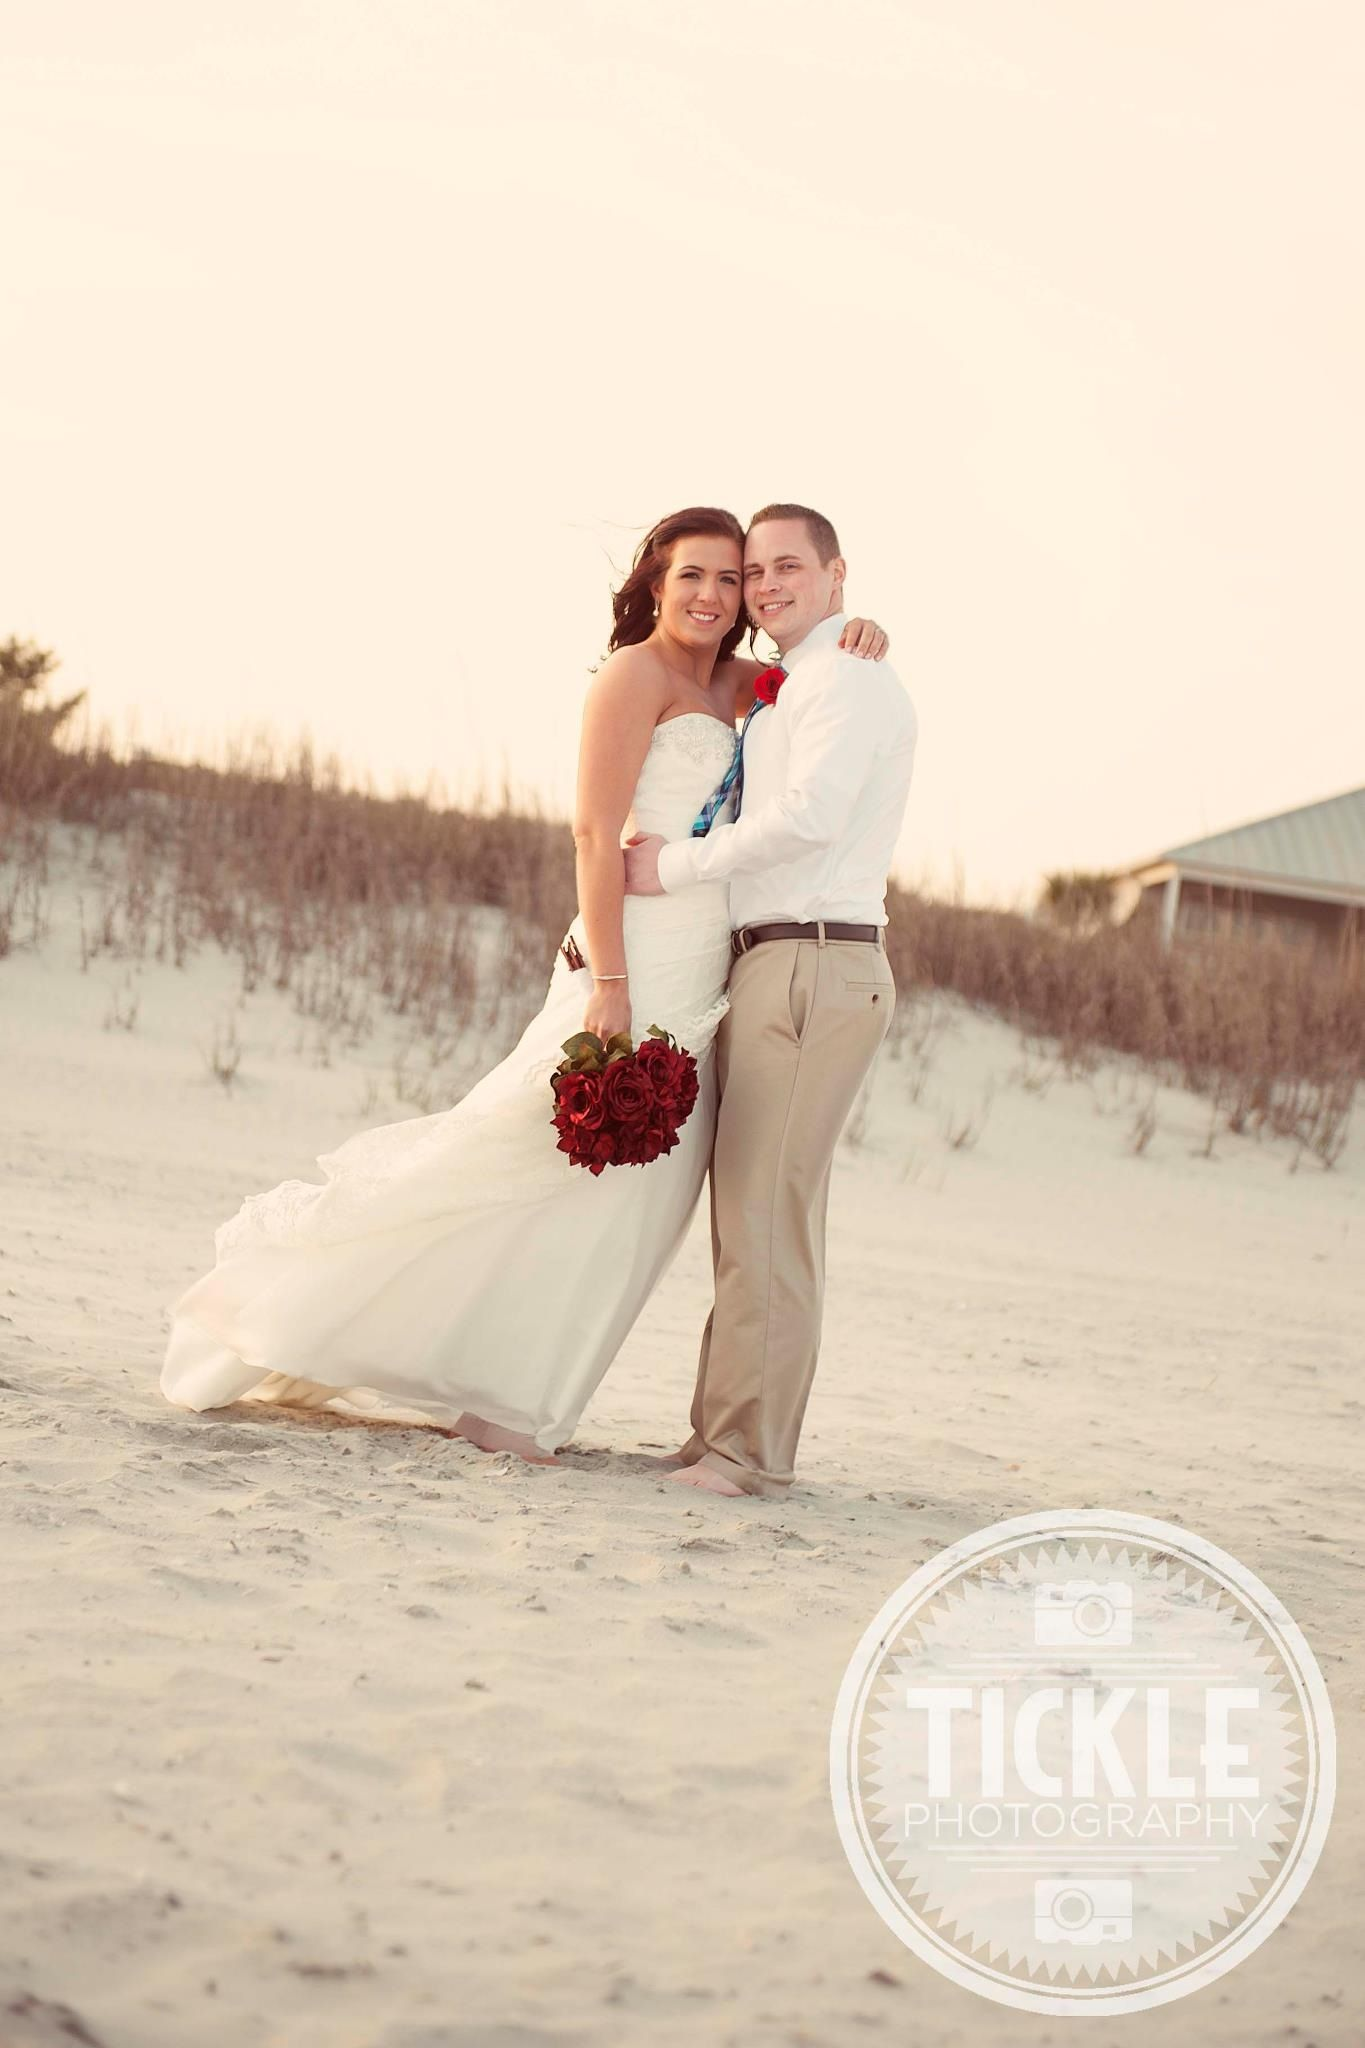 Beach Wedding Cherry Grove Sc North Myrtle Tickle Photography